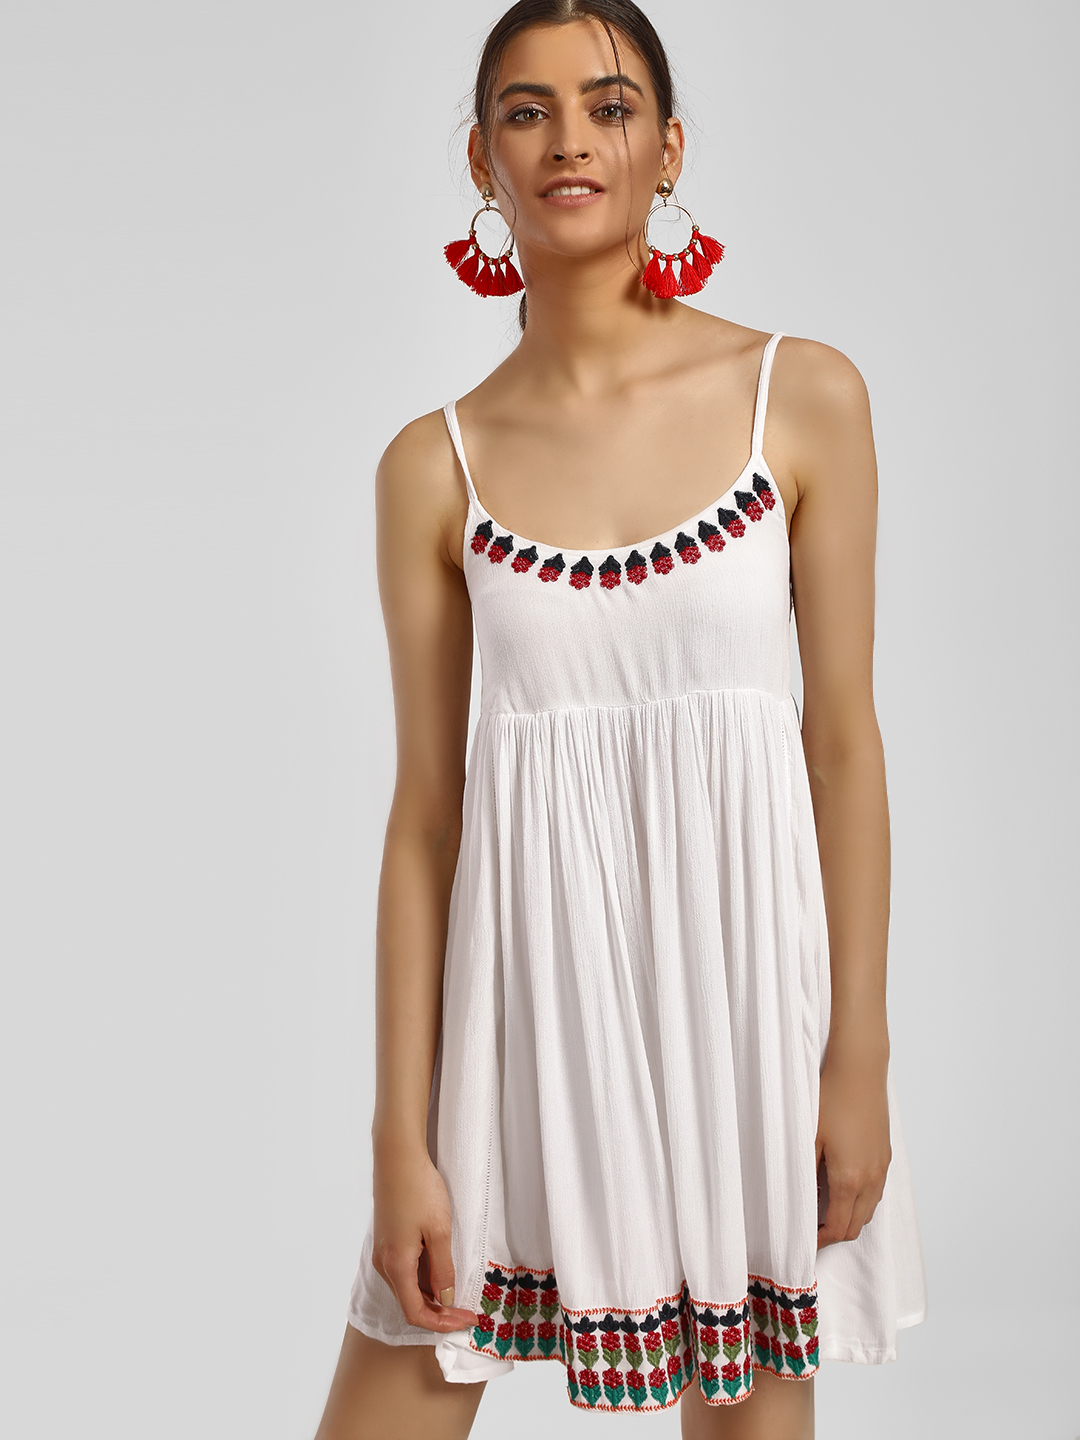 MIWAY White Floral Embroidered Cami Skater Dress 1